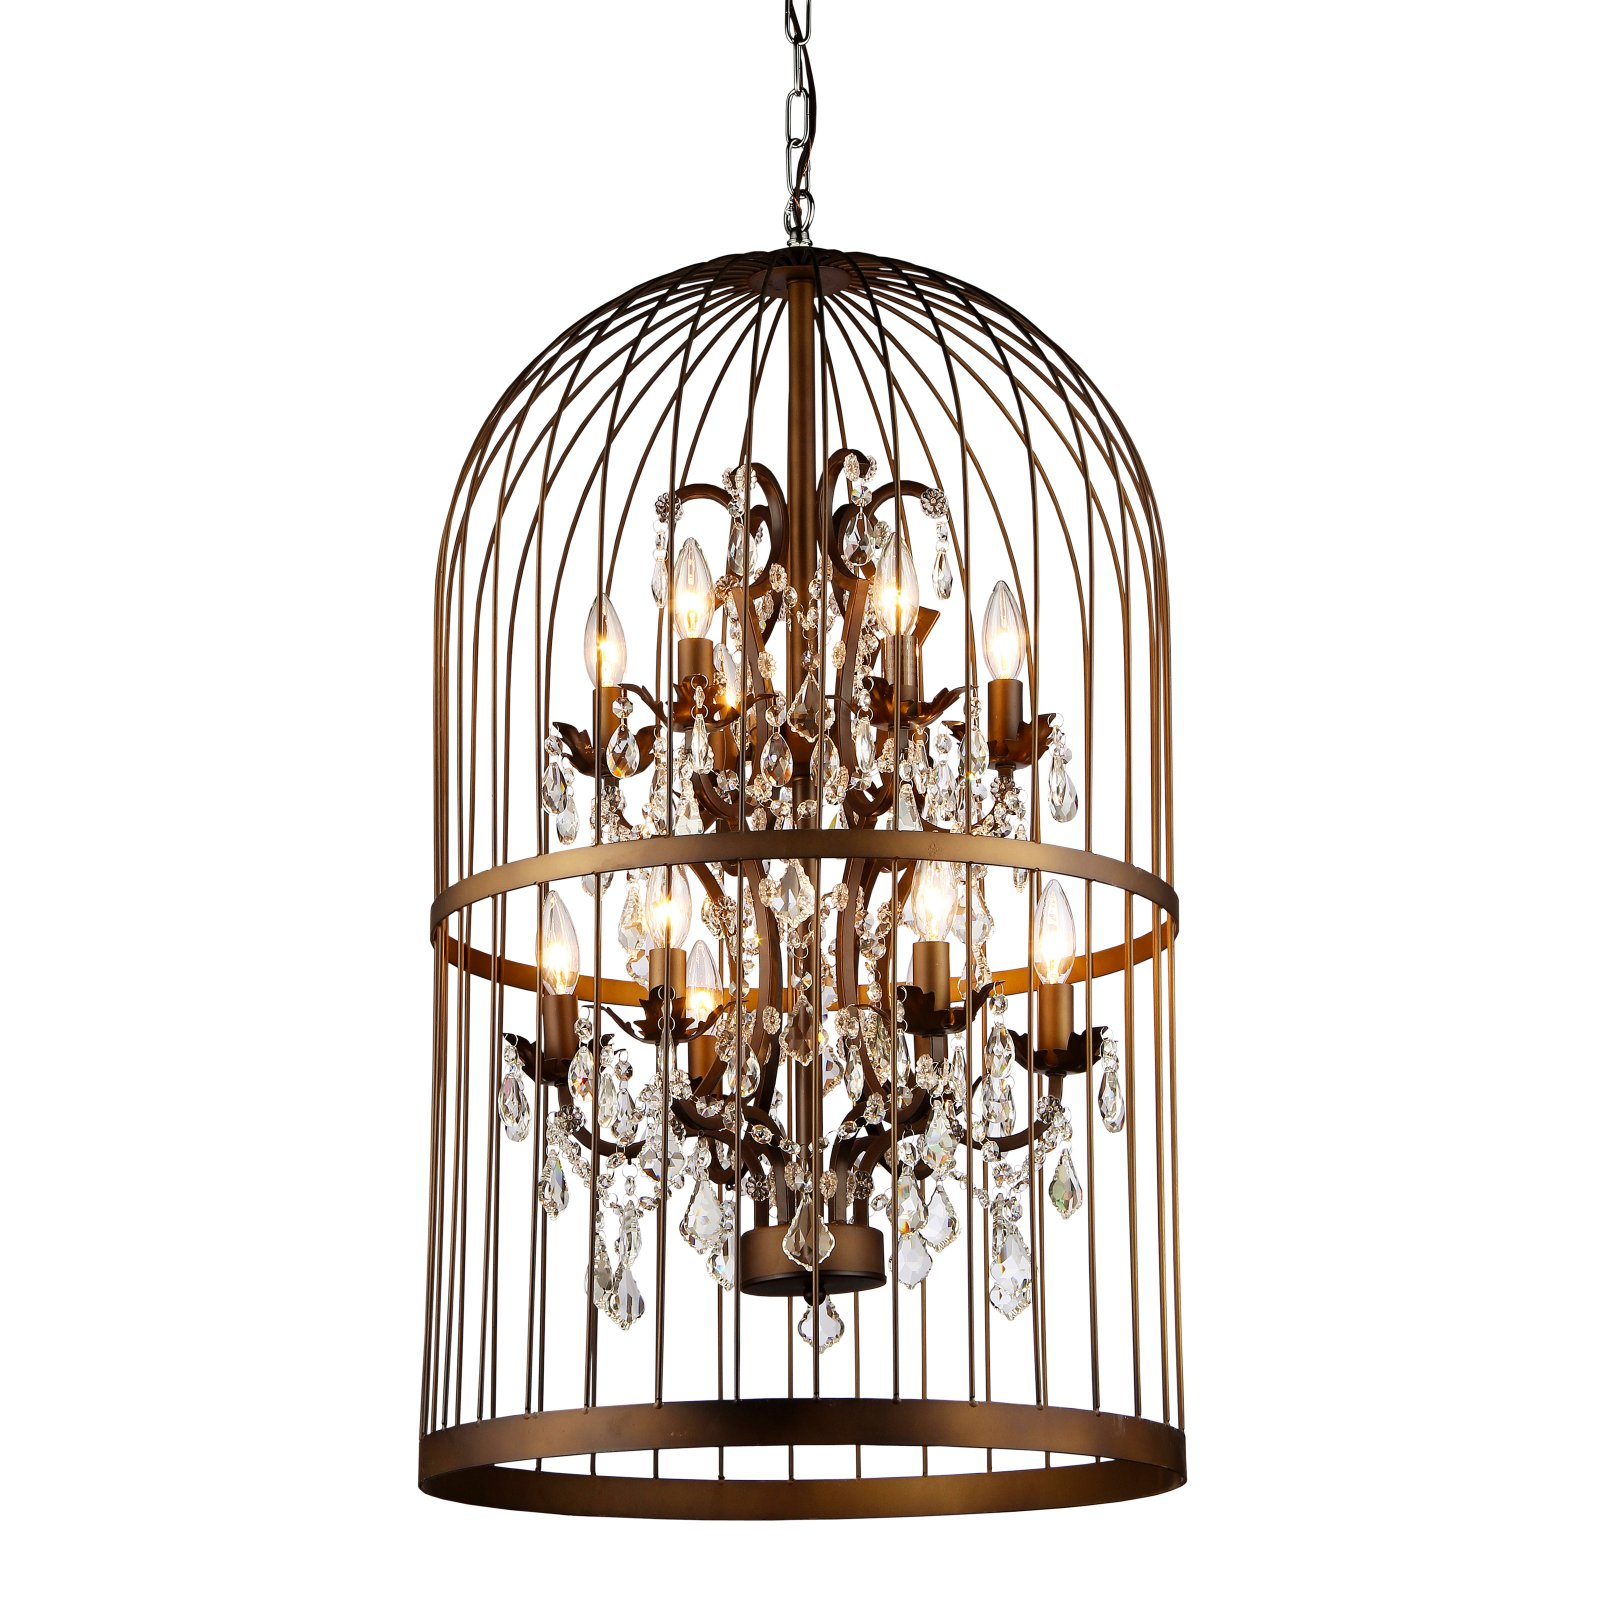 Warehouse of Tiffany Rinee III Cage Chandelier RL8058D